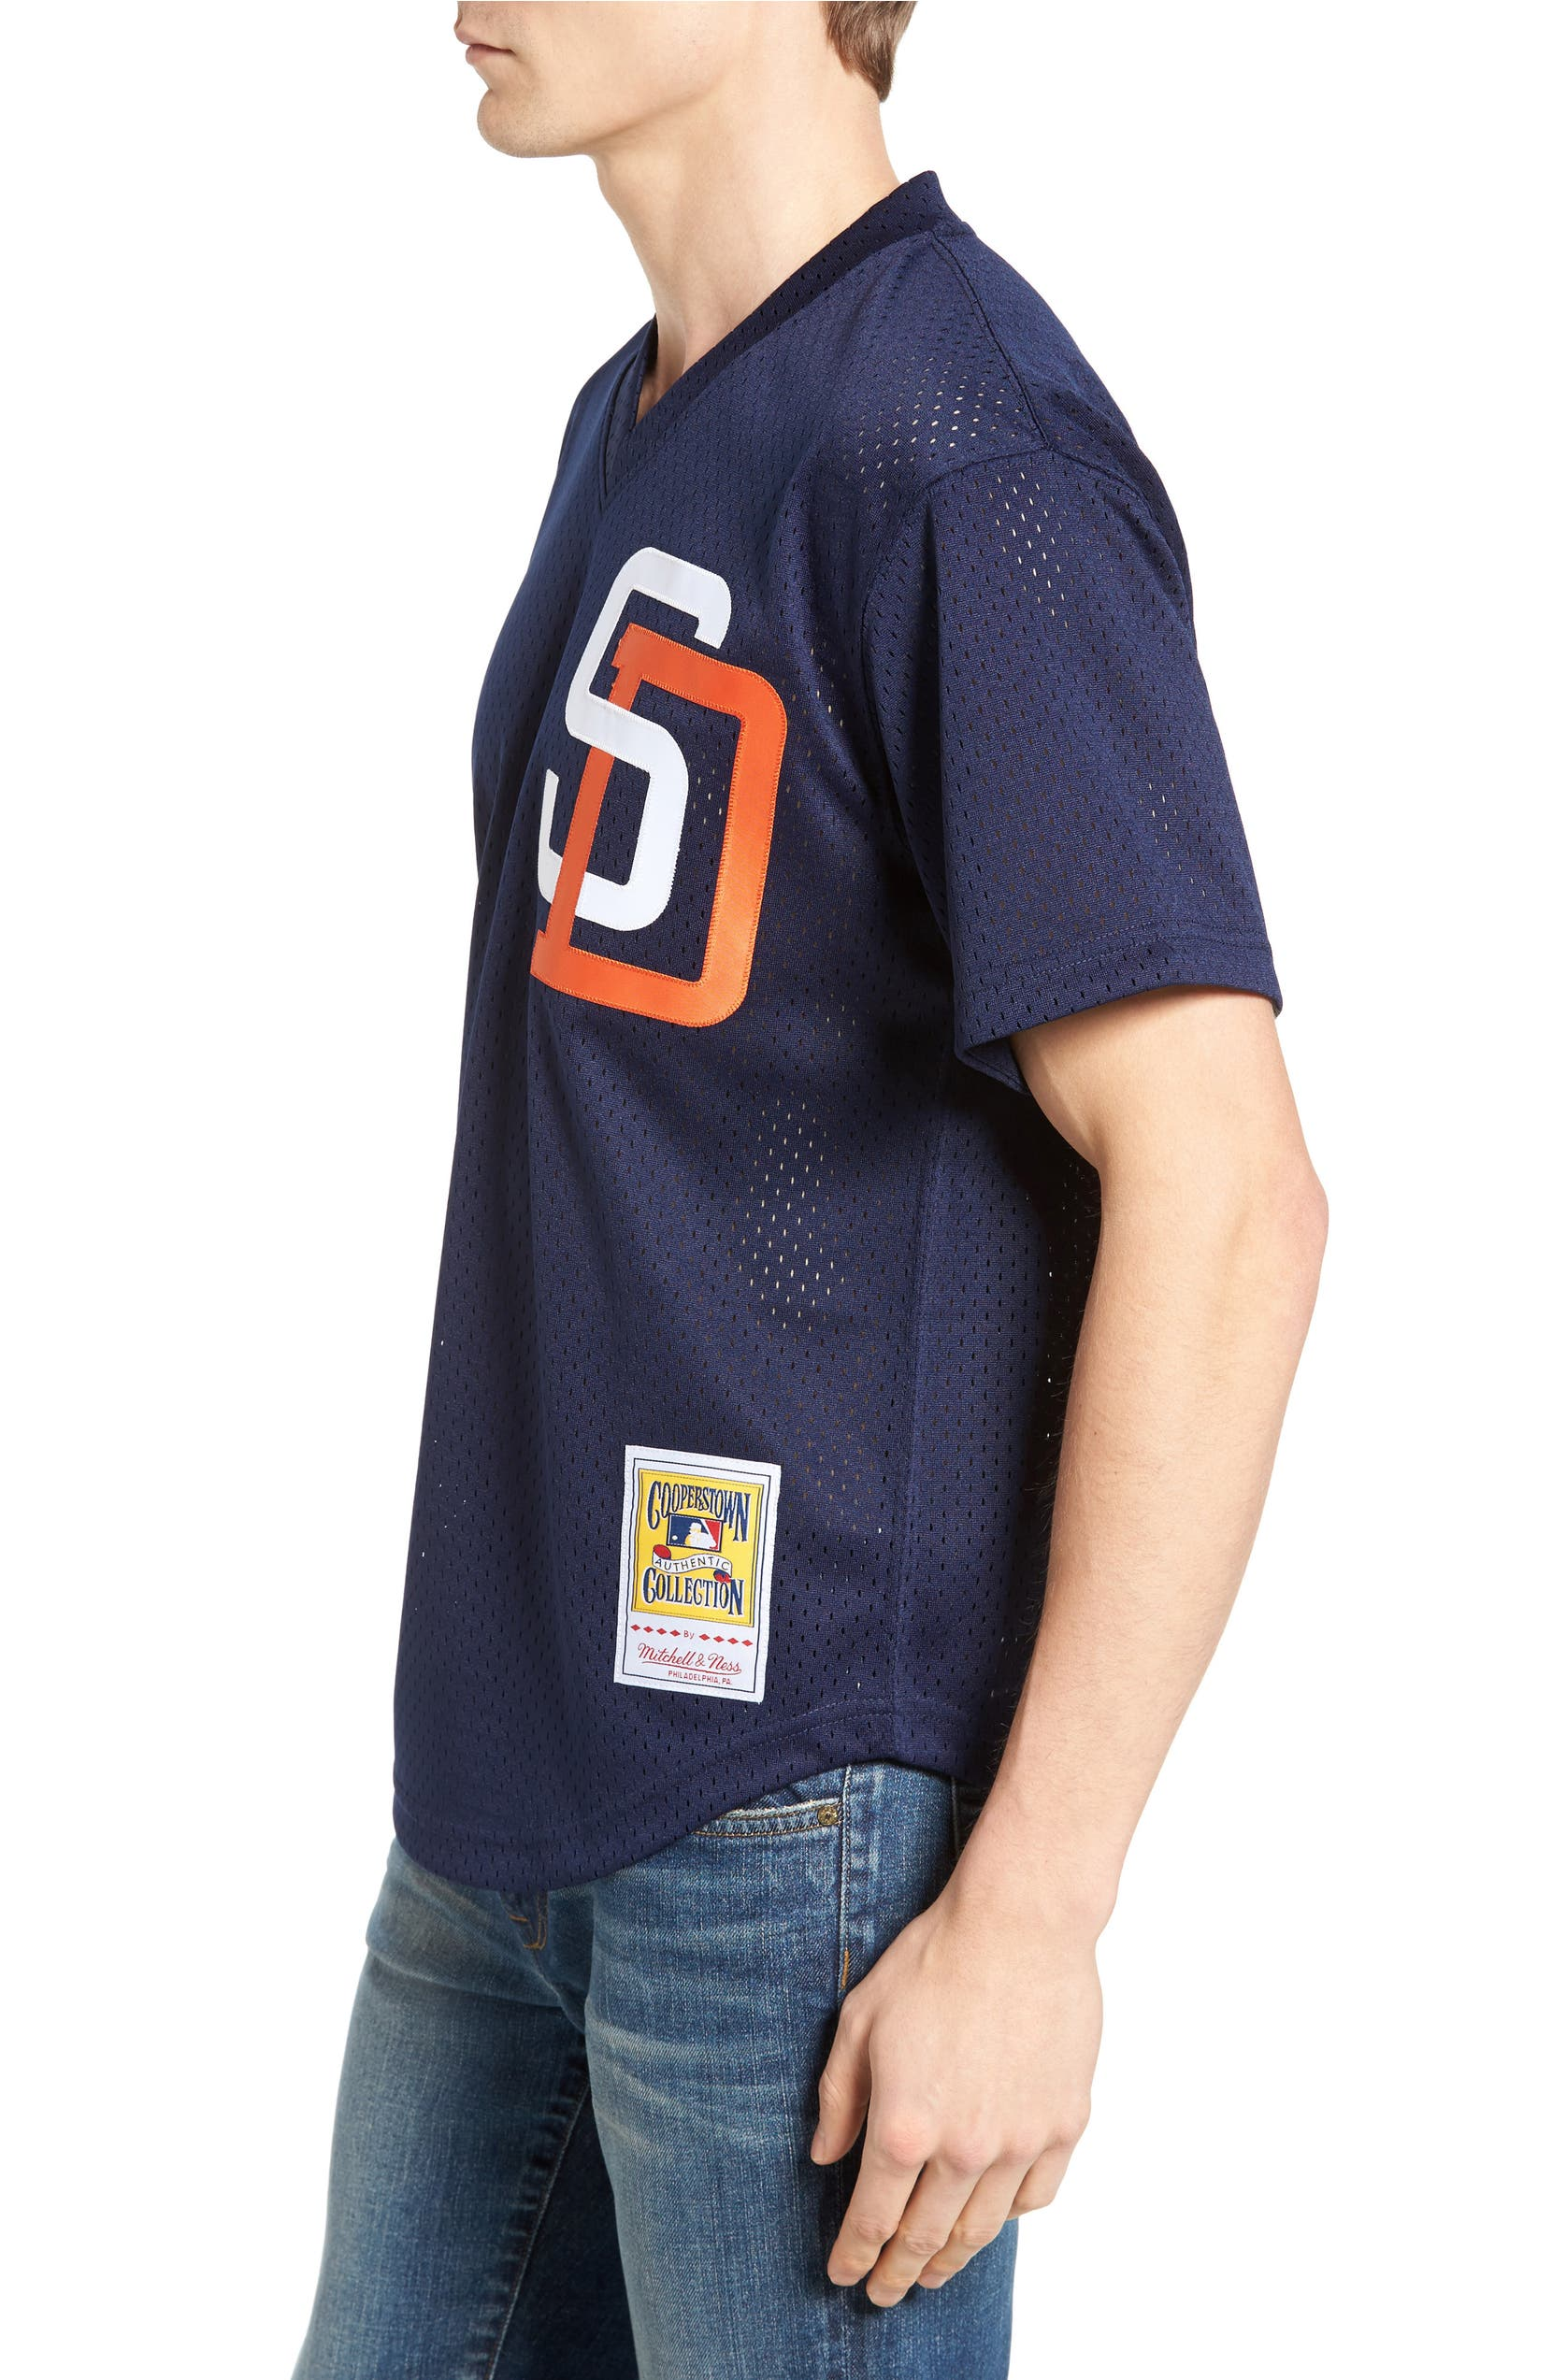 low priced cee9d 7aaae Mitchell & Ness 'Tony Gwynn - San Diego Padres' Authentic ...